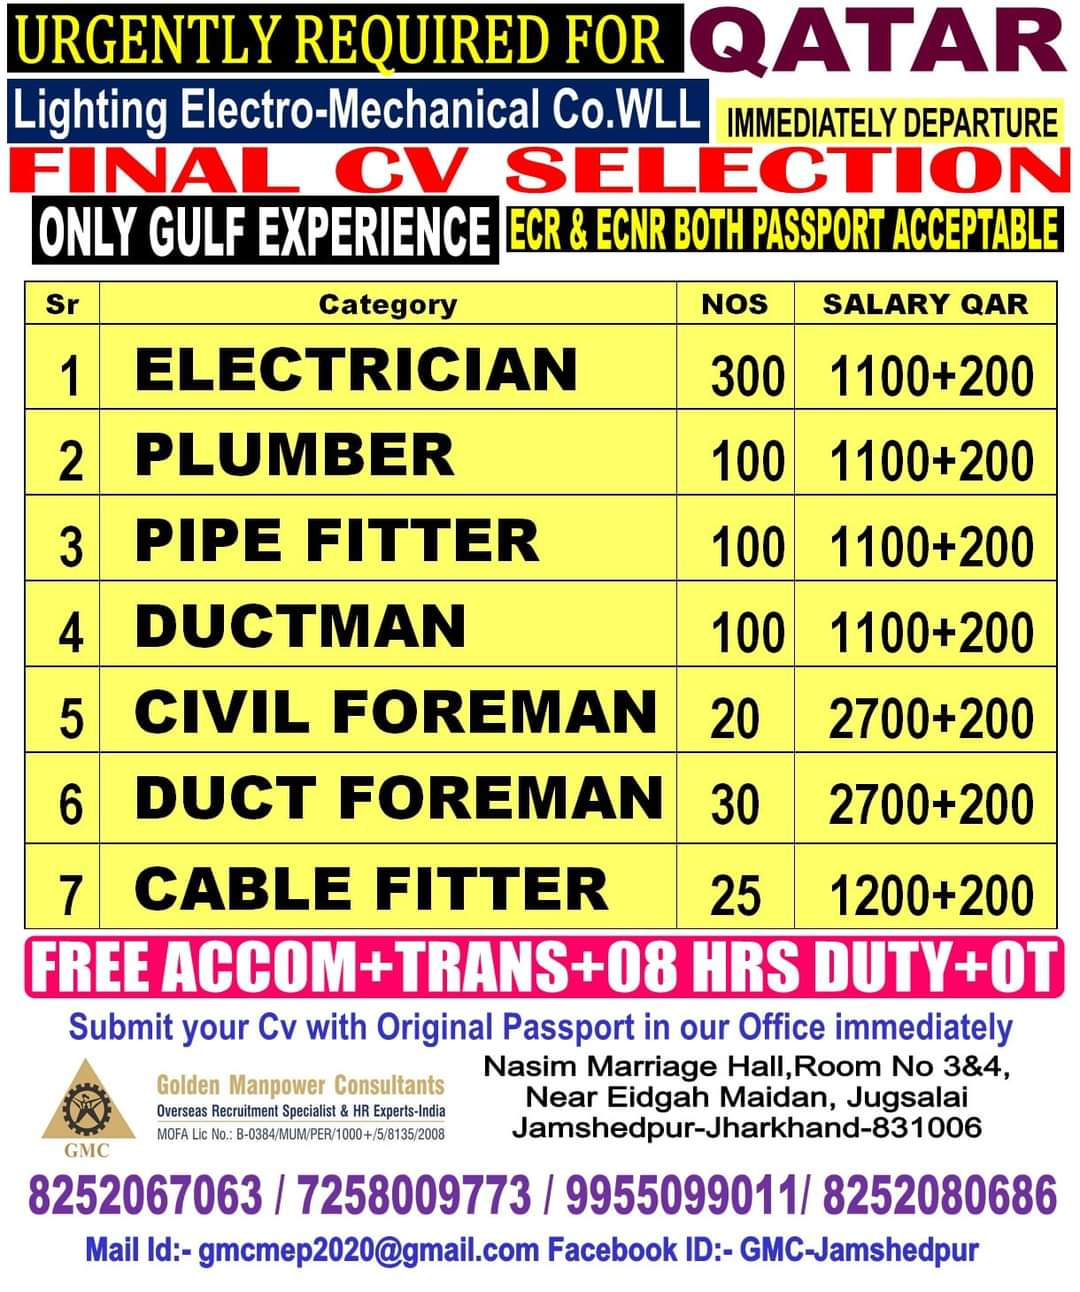 URGENTLY REQUIRED FOR LIGHTING ELECTRO MECHANICAL COMPANY